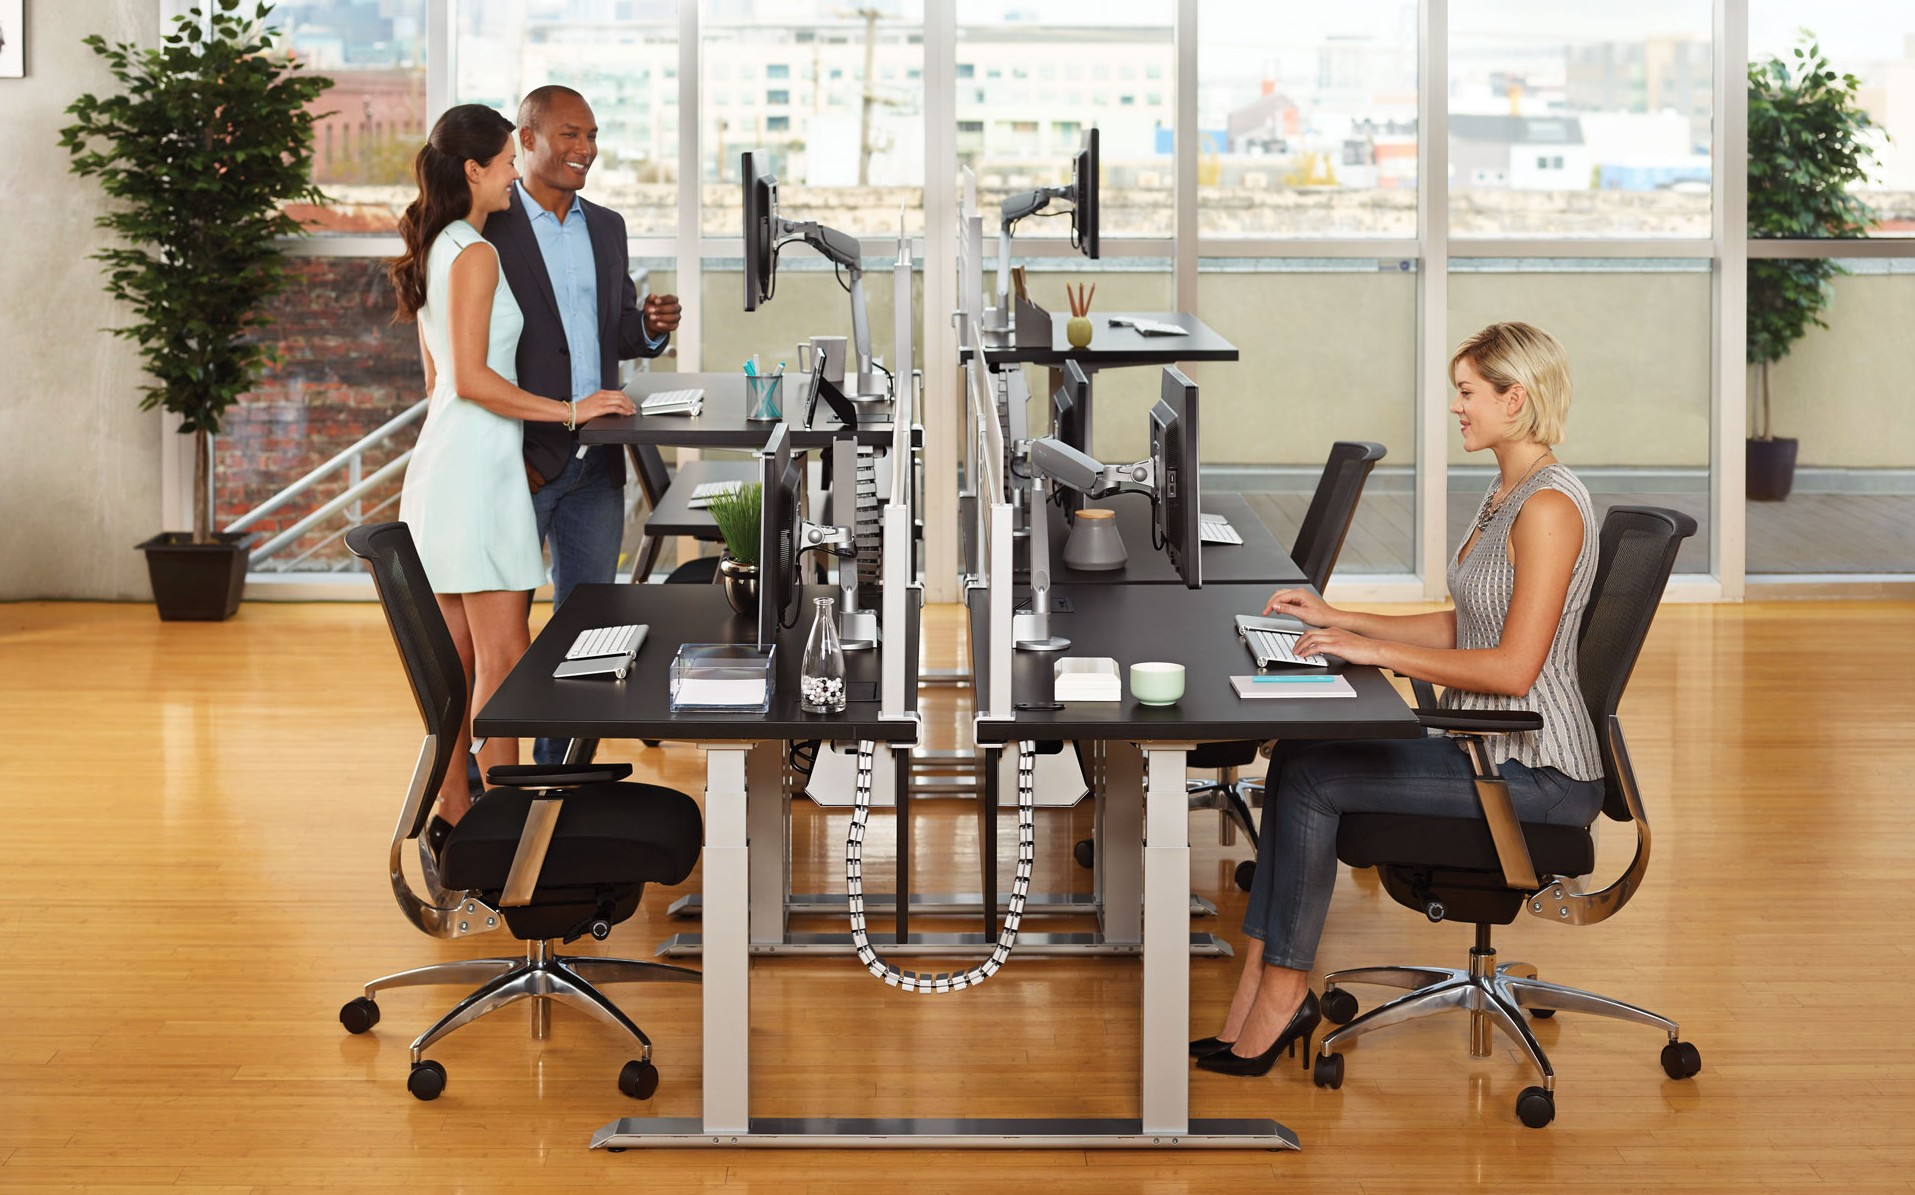 work-ergonomics-ergonomically-posture-sit-stand